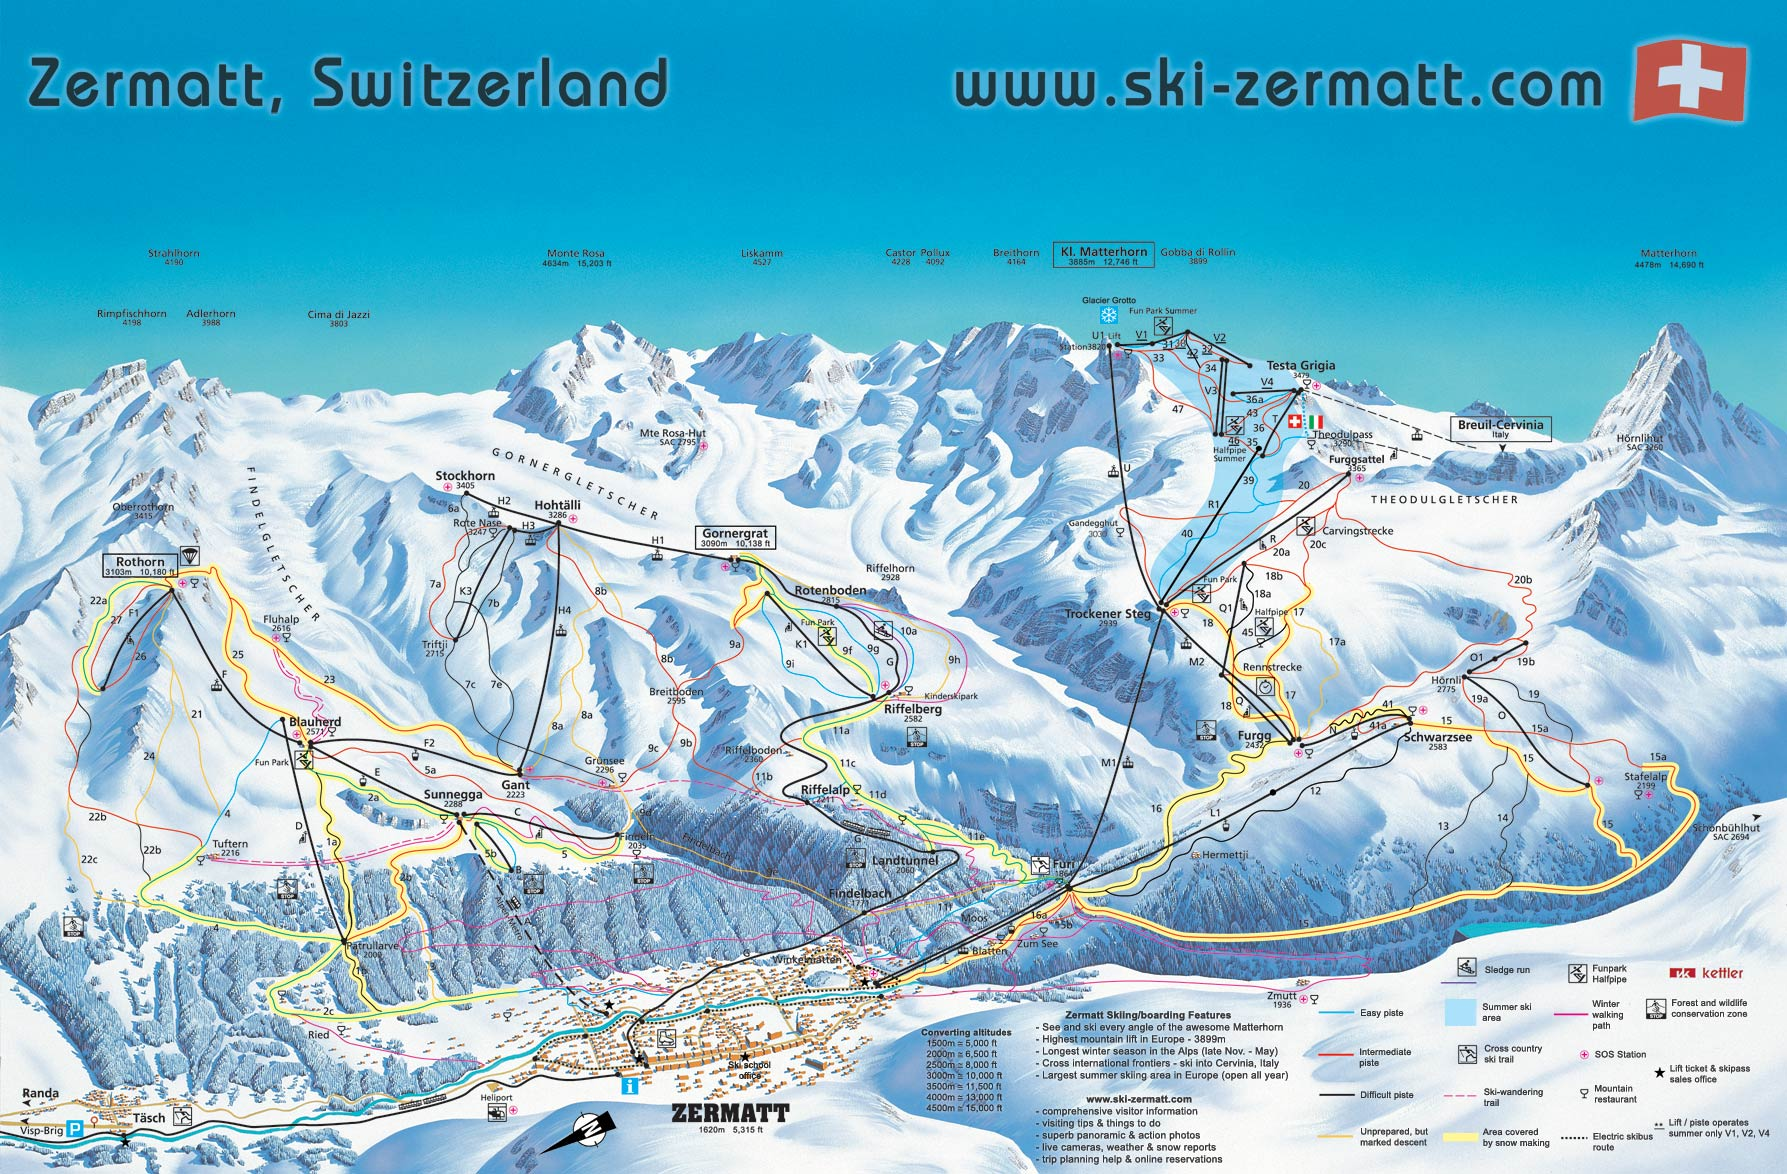 Zermatt Switzerland ski map Zermatt Switzerland mappery